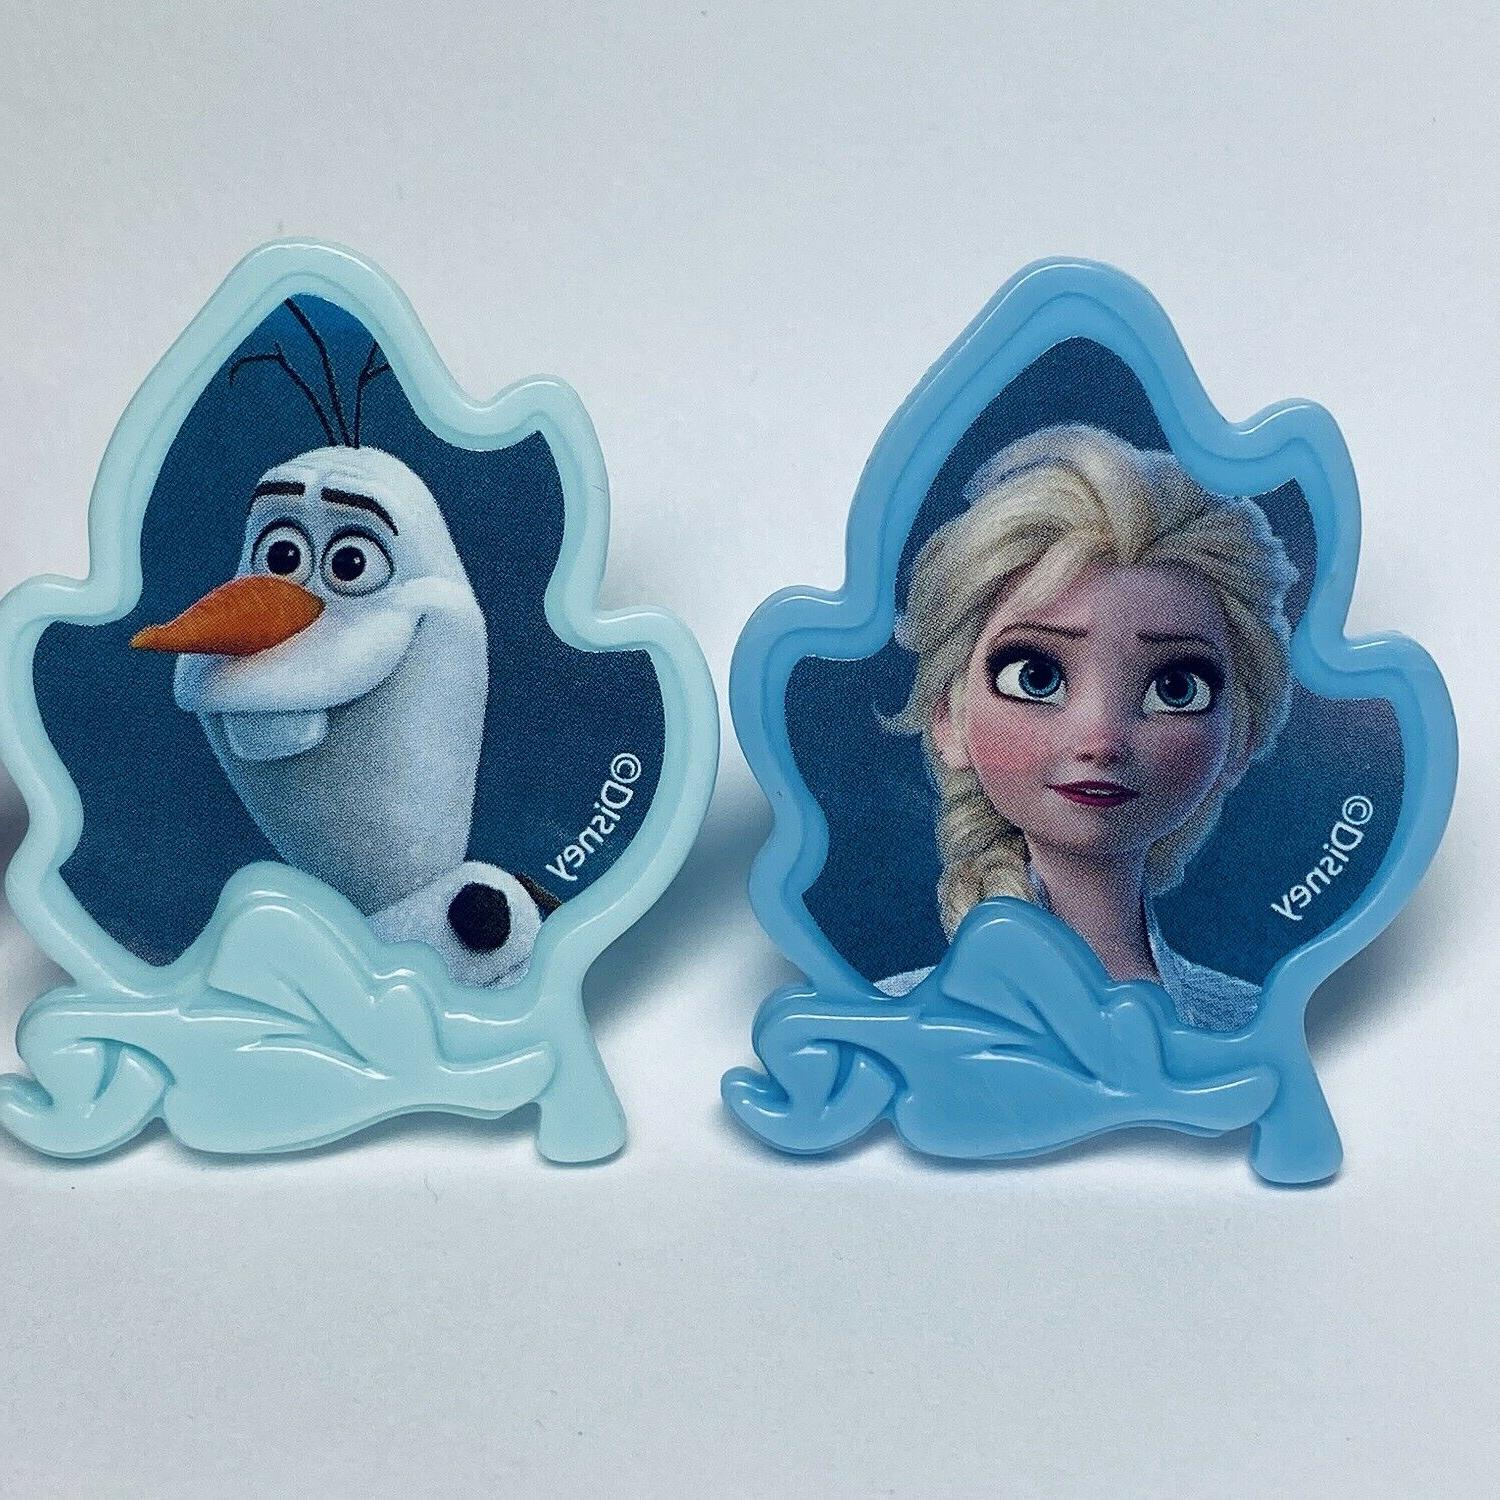 Frozen Supplies Cake Decorations Set of